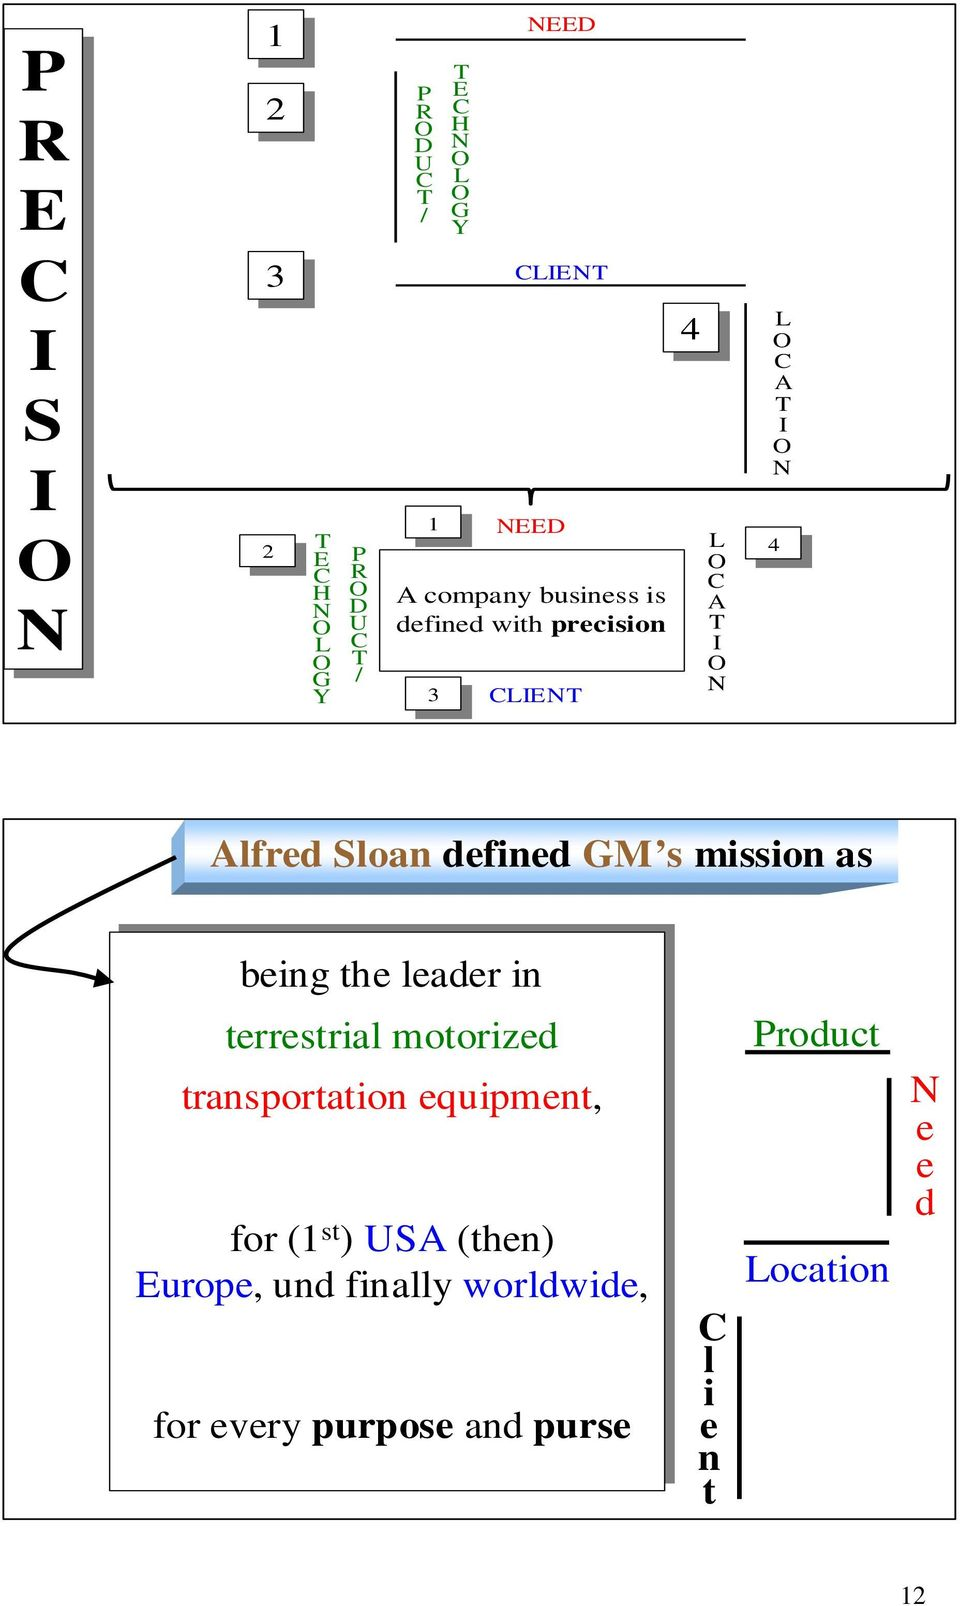 Sloan defined GM s mission as being the leader in terrestrial motorized transportation equipment, Product N